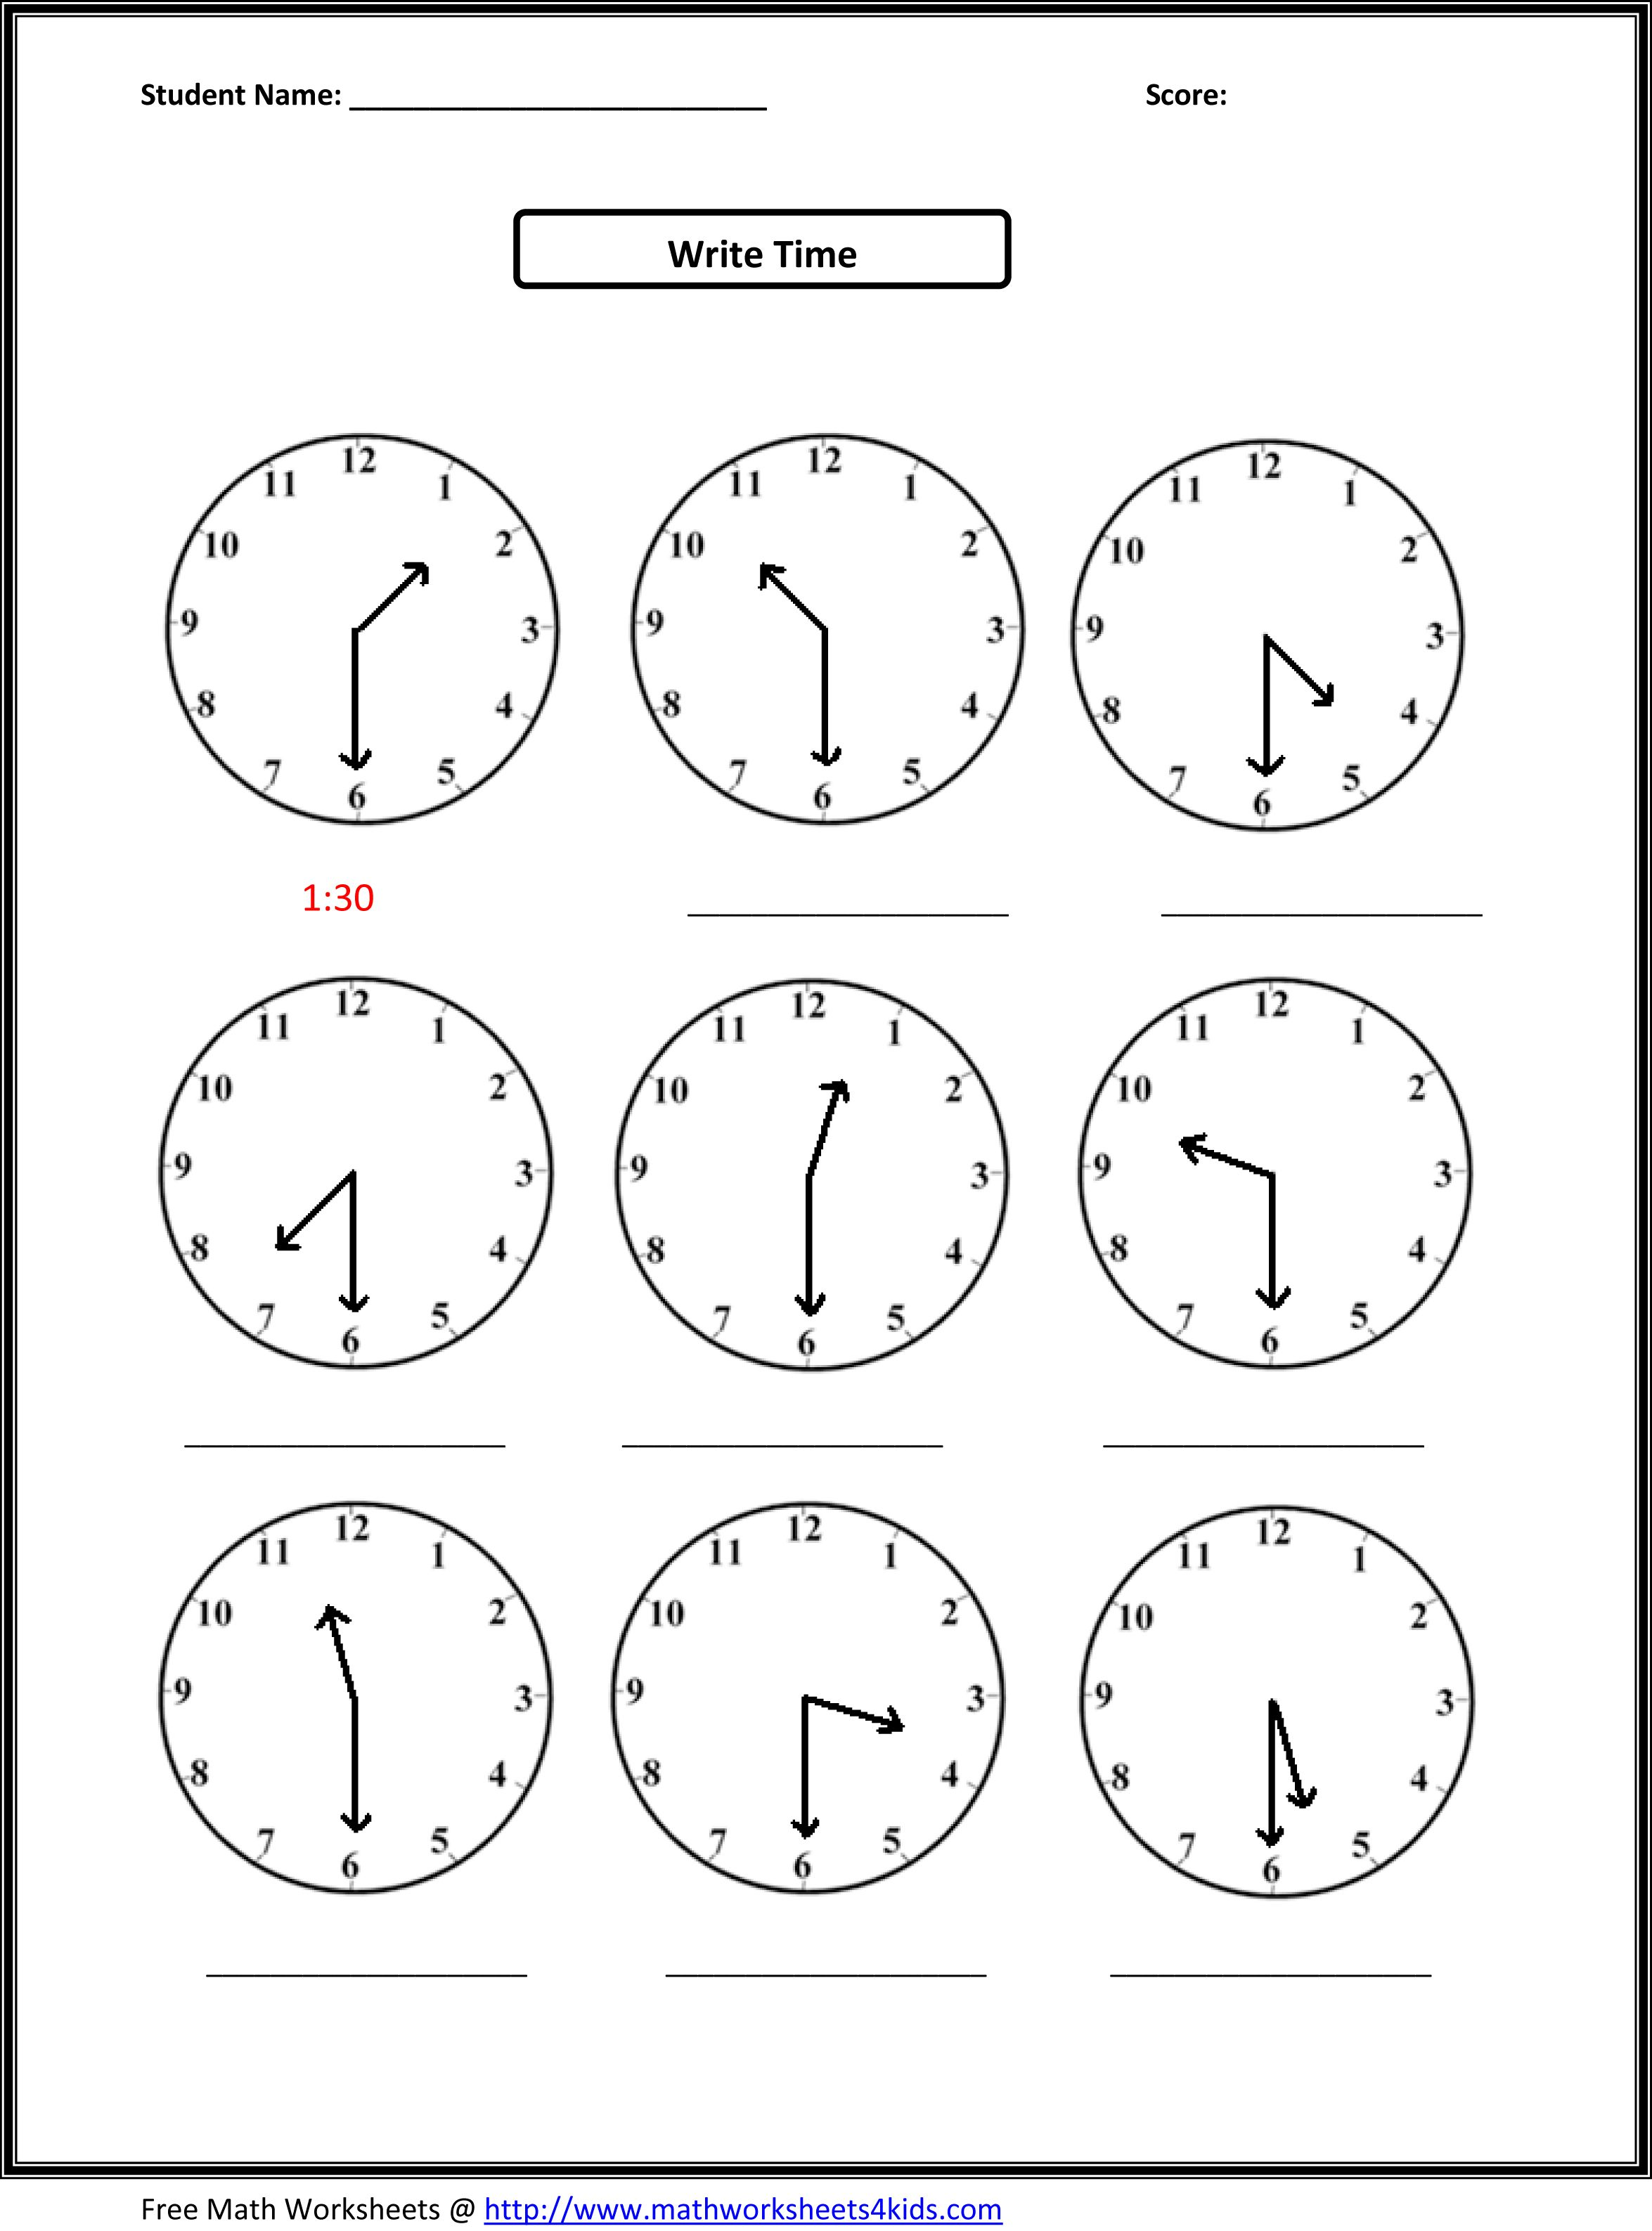 Weirdmailus  Pleasing Worksheet On Time For Grade   Reocurent With Outstanding Free Printable Telling Time Worksheets Nd Grade  Reocurent With Endearing Piano Theory Worksheets For Beginners Also Printable Worksheets On Verbs In Addition Adding And Subtracting Linear Expressions Worksheet And Water Erosion Worksheet Answers As Well As Nuremberg Laws Worksheet Additionally Super Teacher Worksheets Adding Fractions From Reocurentcom With Weirdmailus  Outstanding Worksheet On Time For Grade   Reocurent With Endearing Free Printable Telling Time Worksheets Nd Grade  Reocurent And Pleasing Piano Theory Worksheets For Beginners Also Printable Worksheets On Verbs In Addition Adding And Subtracting Linear Expressions Worksheet From Reocurentcom